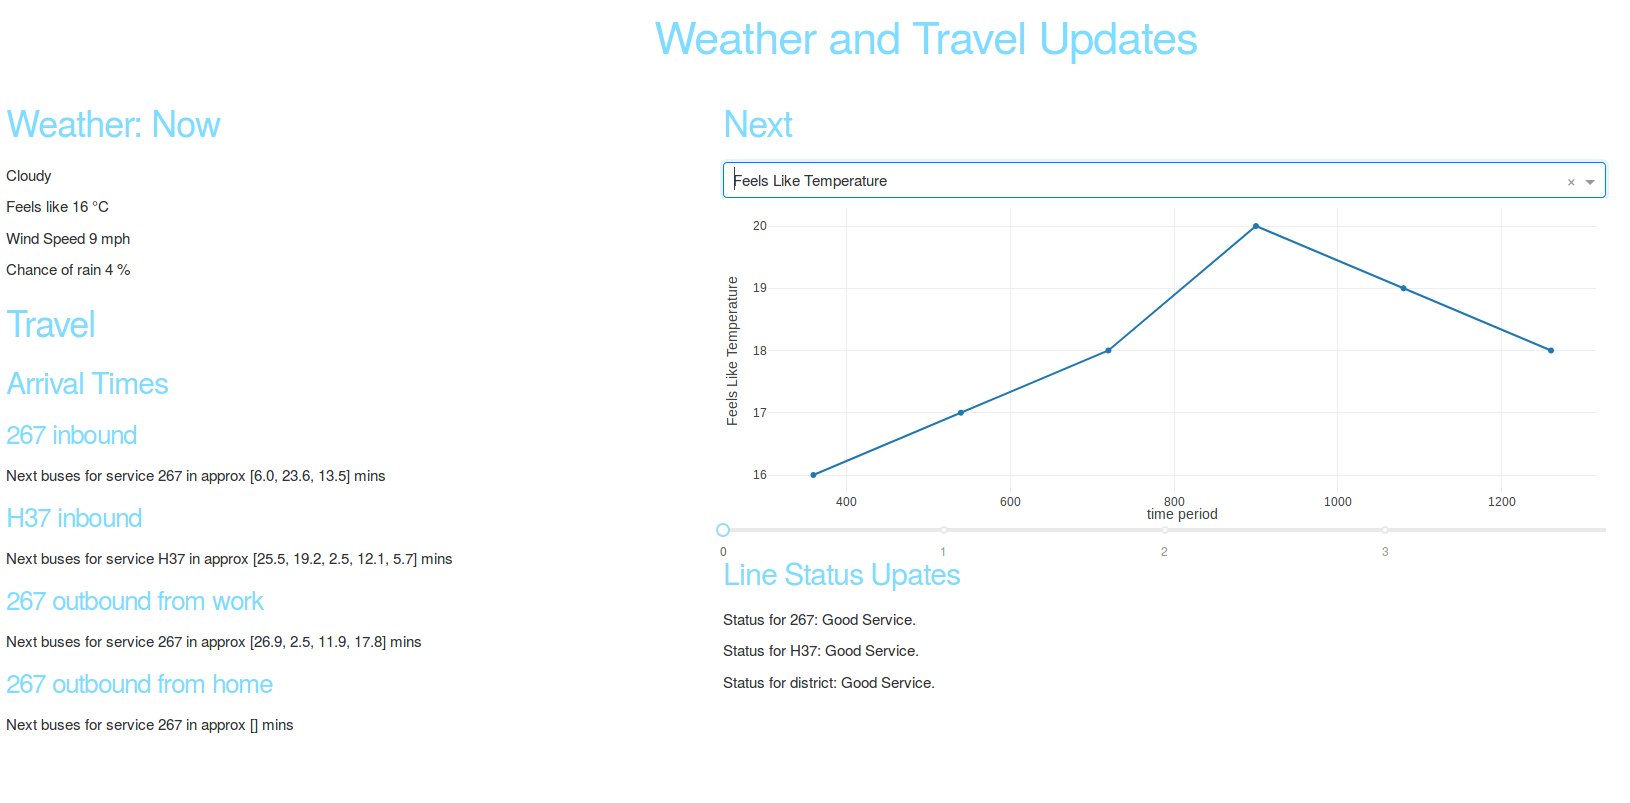 Live Travel and Weather Updates using APIs